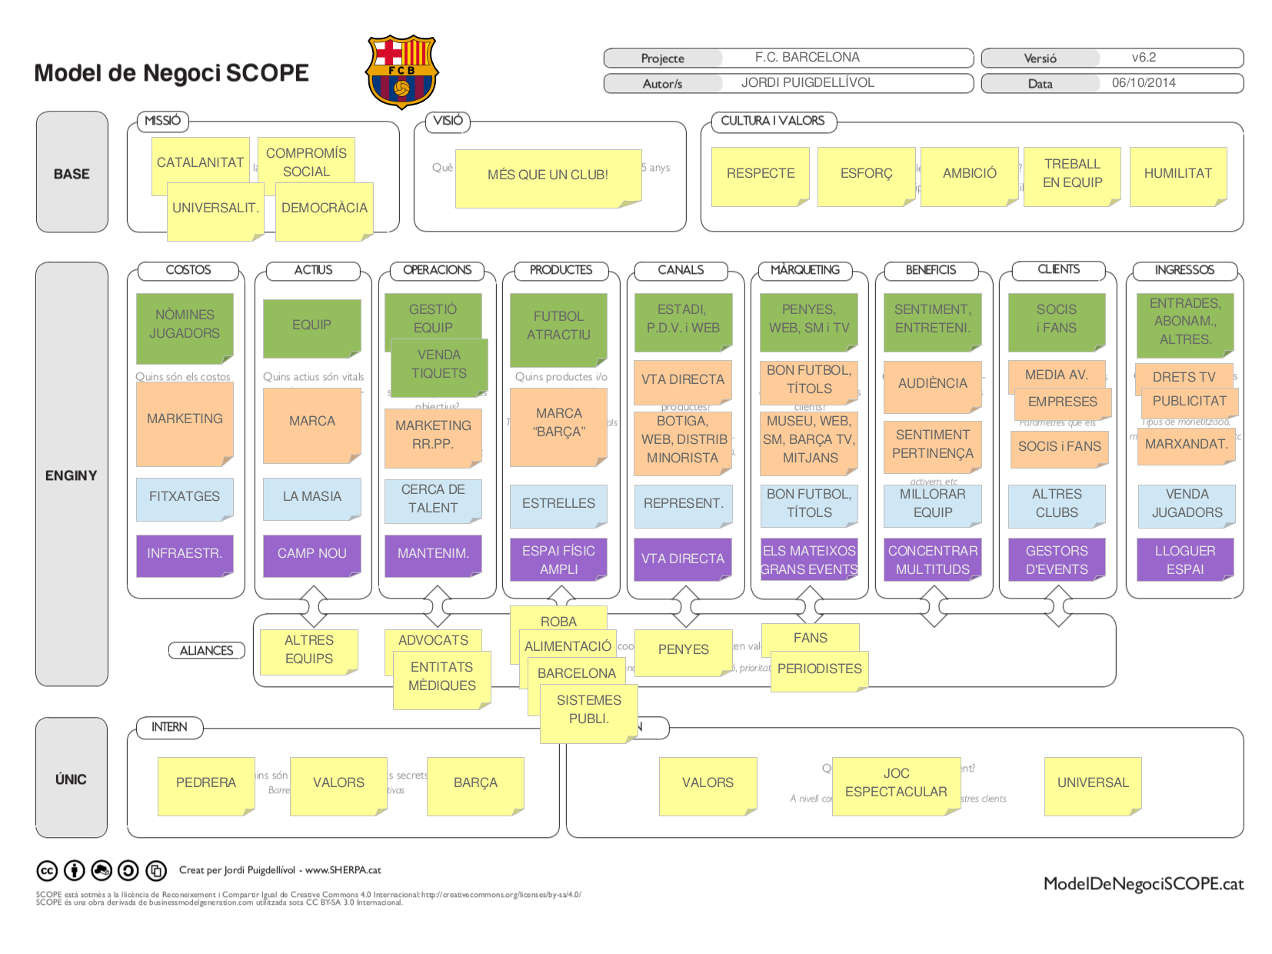 FC Barcelona - Model de Negoci SCOPE